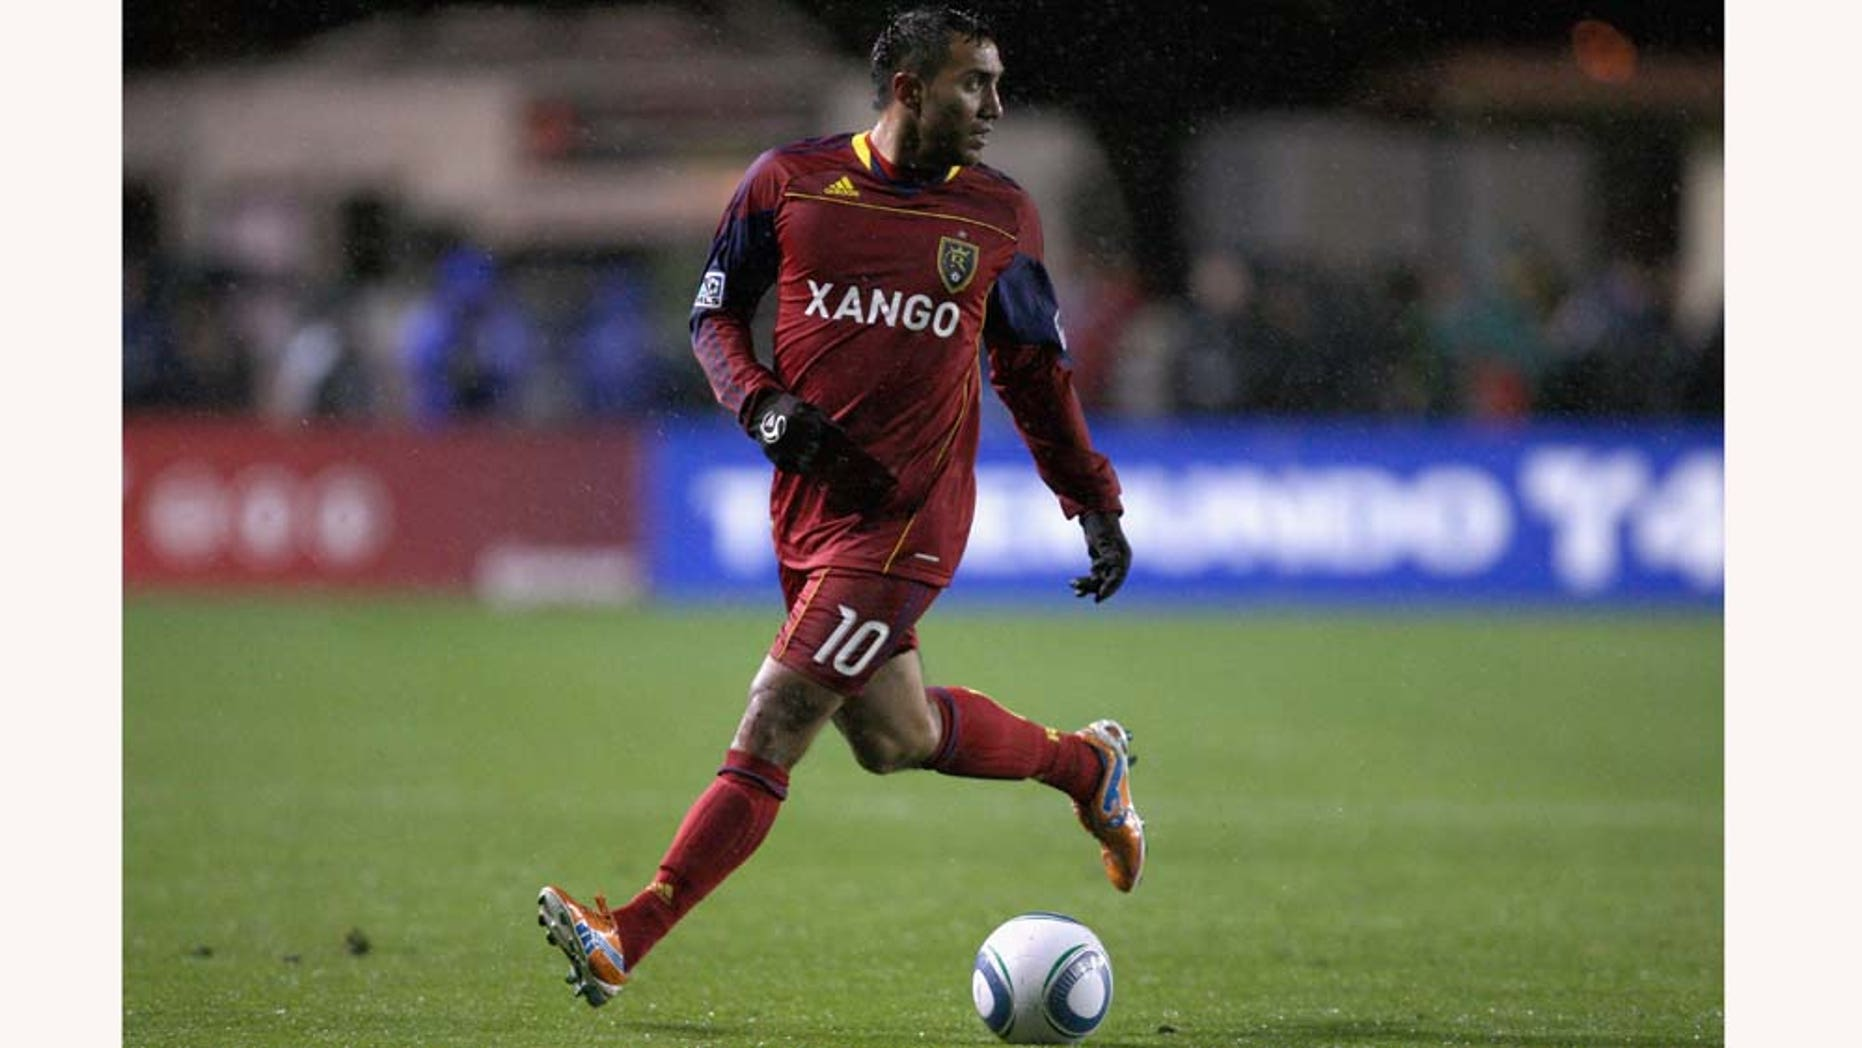 SANTA CLARA, CA - MARCH 19:  Arturo Alvarez #10 of Real Salt Lake in action during their game against the San Jose Earthquakes at Buck Shaw Stadium on March 19, 2011 in Santa Clara, California.  (Photo by Ezra Shaw/Getty Images)